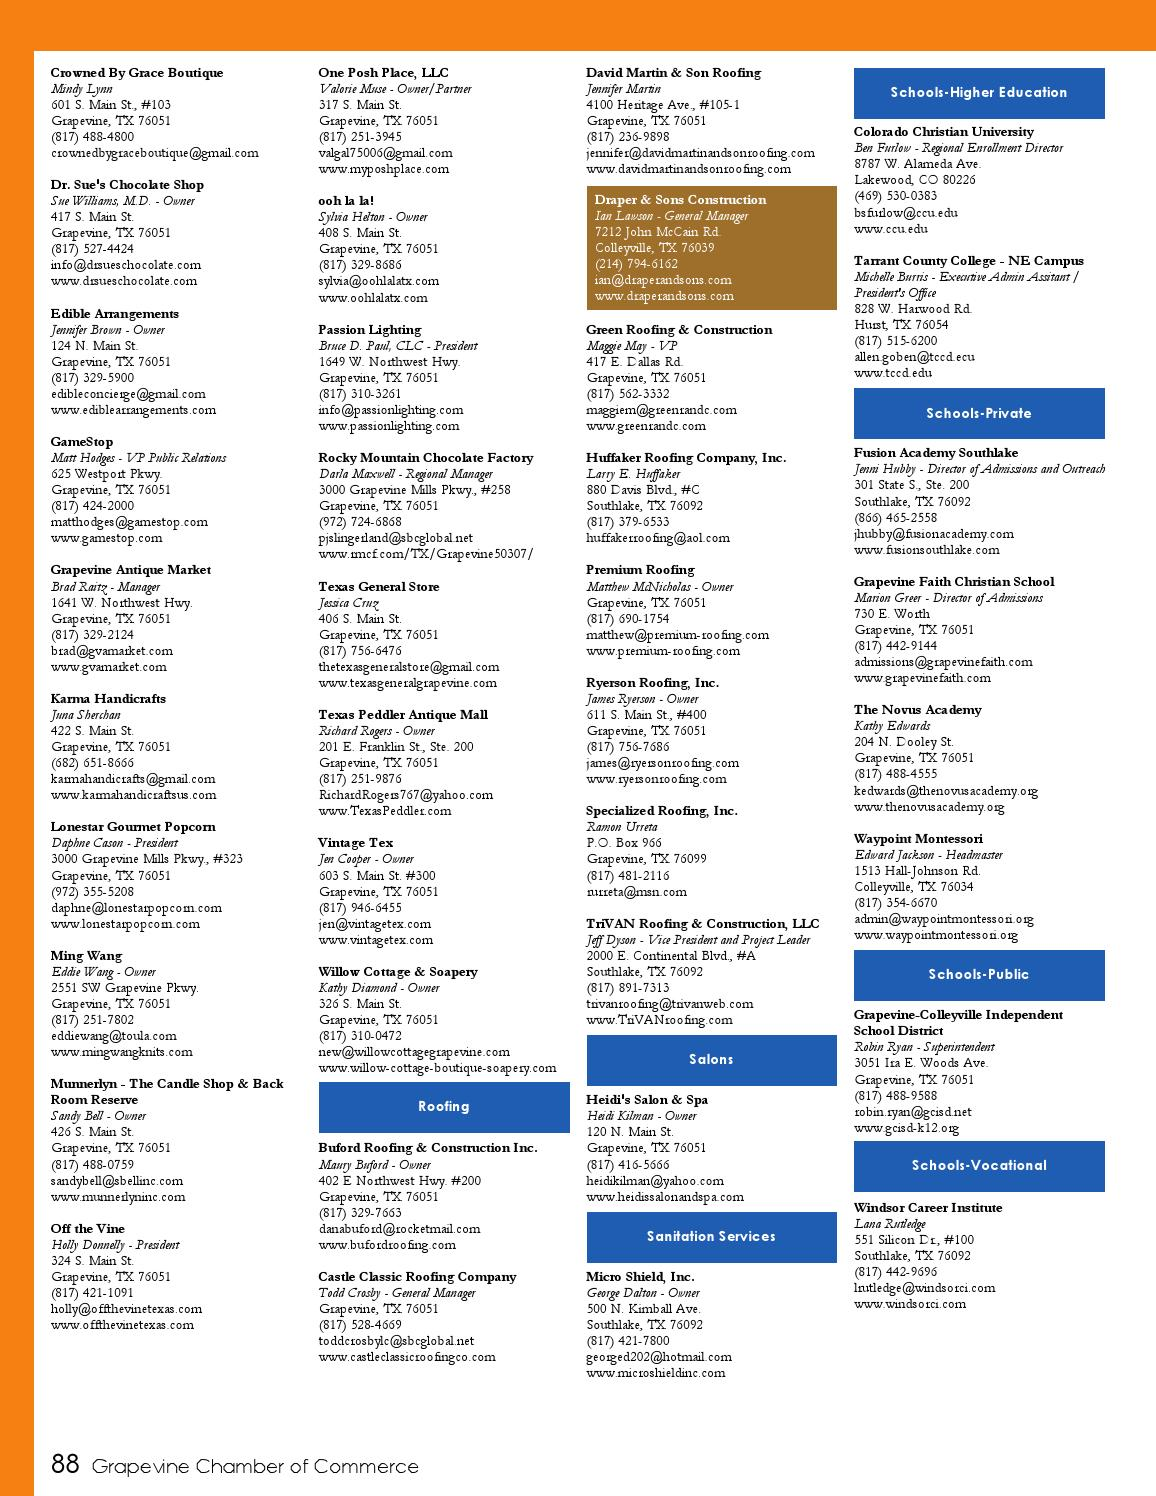 Grapevine Chamber Of Commerce 2016 Community Directory Referral